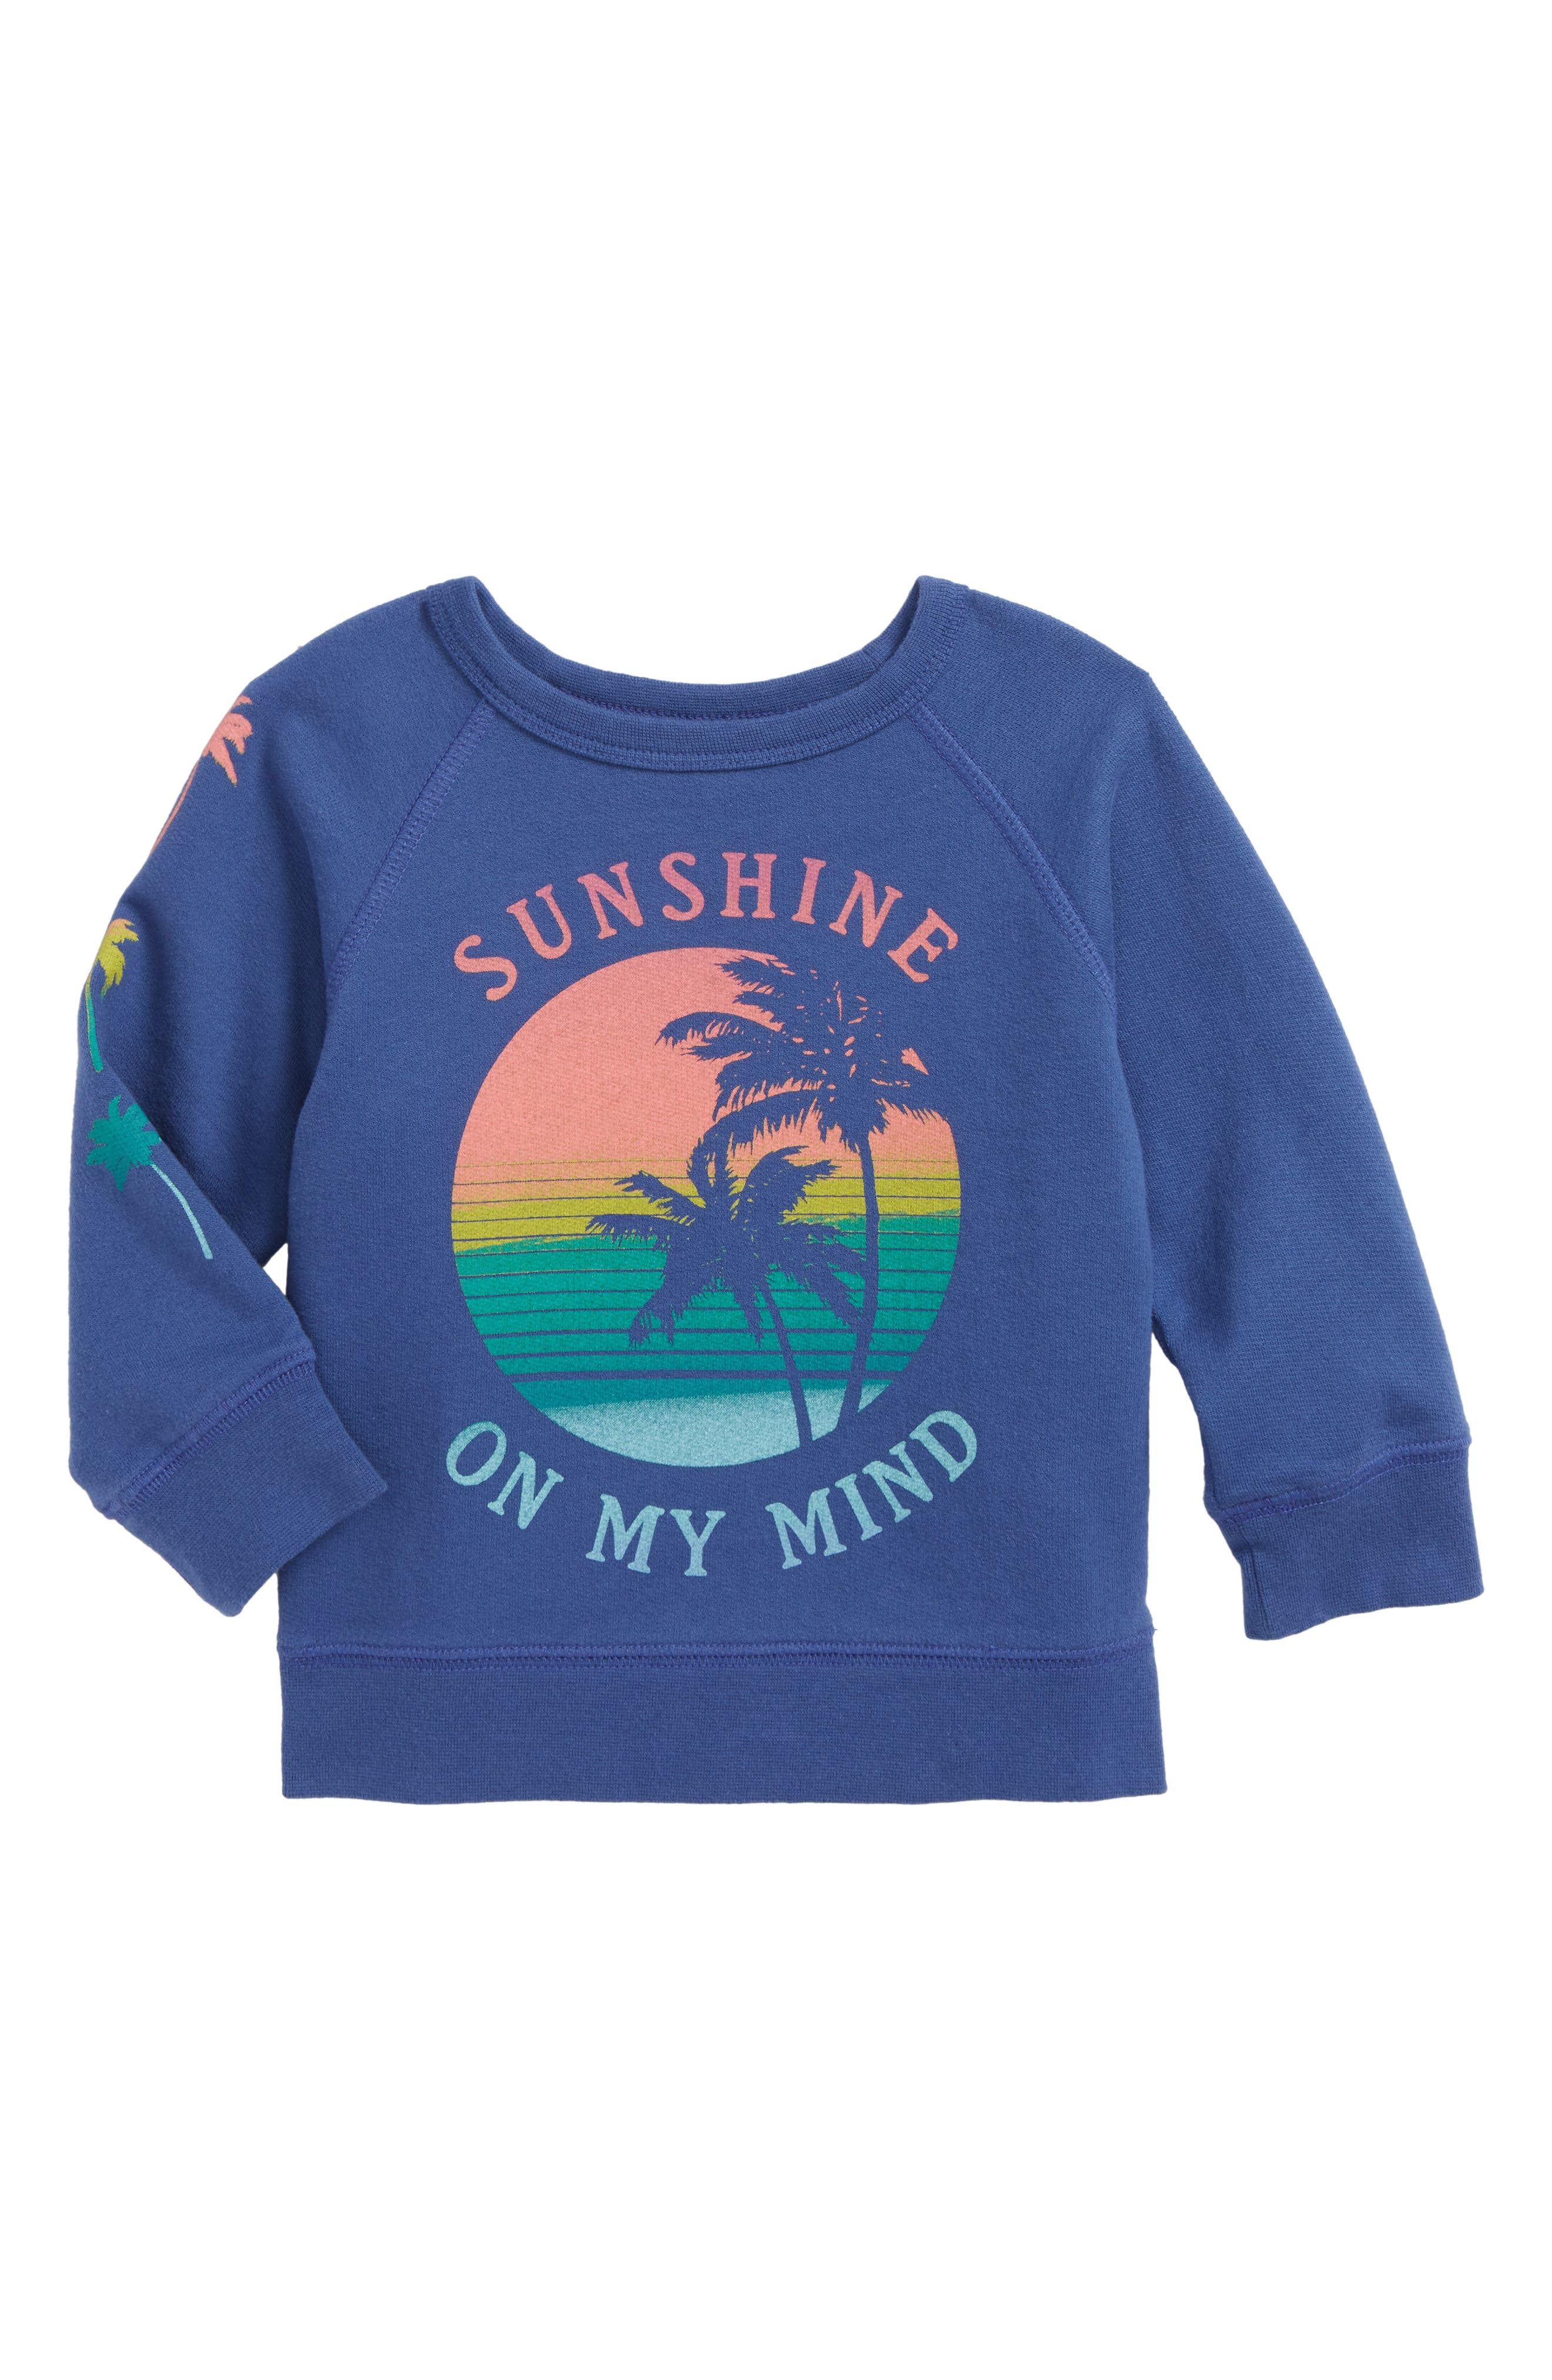 Sunshine On My Mind Graphic Tee,                             Main thumbnail 1, color,                             410